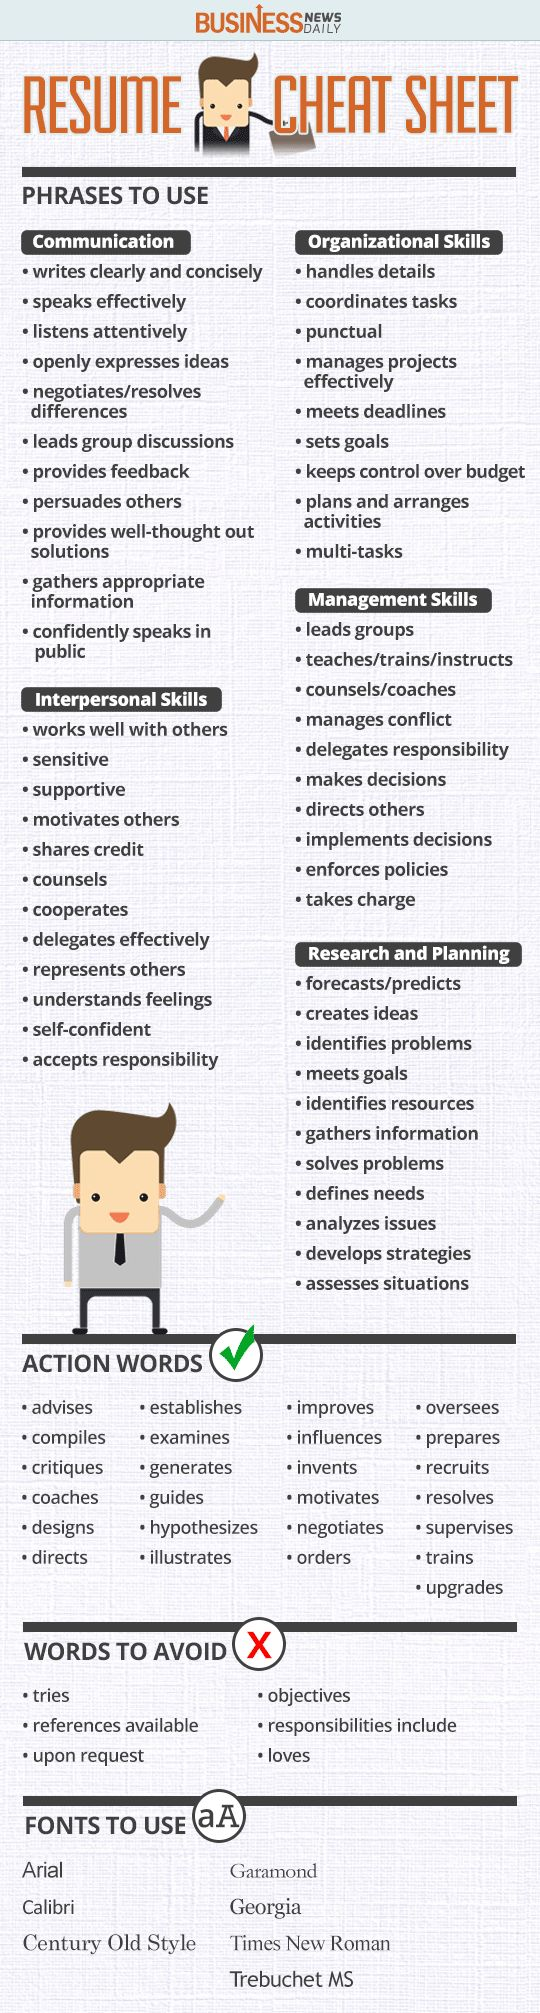 Picnictoimpeachus  Personable  Ideas About Resume On Pinterest  Cv Format Resume Cv And  With Glamorous Resume Cheat Sheet Infographic Andrews Almost Done With A Complete Unit On Employment Which With Alluring Free Resume Templates Download Also Make A Free Resume In Addition Cover Letter Samples For Resume And Create Resume Free As Well As Job Resumes Additionally Food Service Resume From Pinterestcom With Picnictoimpeachus  Glamorous  Ideas About Resume On Pinterest  Cv Format Resume Cv And  With Alluring Resume Cheat Sheet Infographic Andrews Almost Done With A Complete Unit On Employment Which And Personable Free Resume Templates Download Also Make A Free Resume In Addition Cover Letter Samples For Resume From Pinterestcom